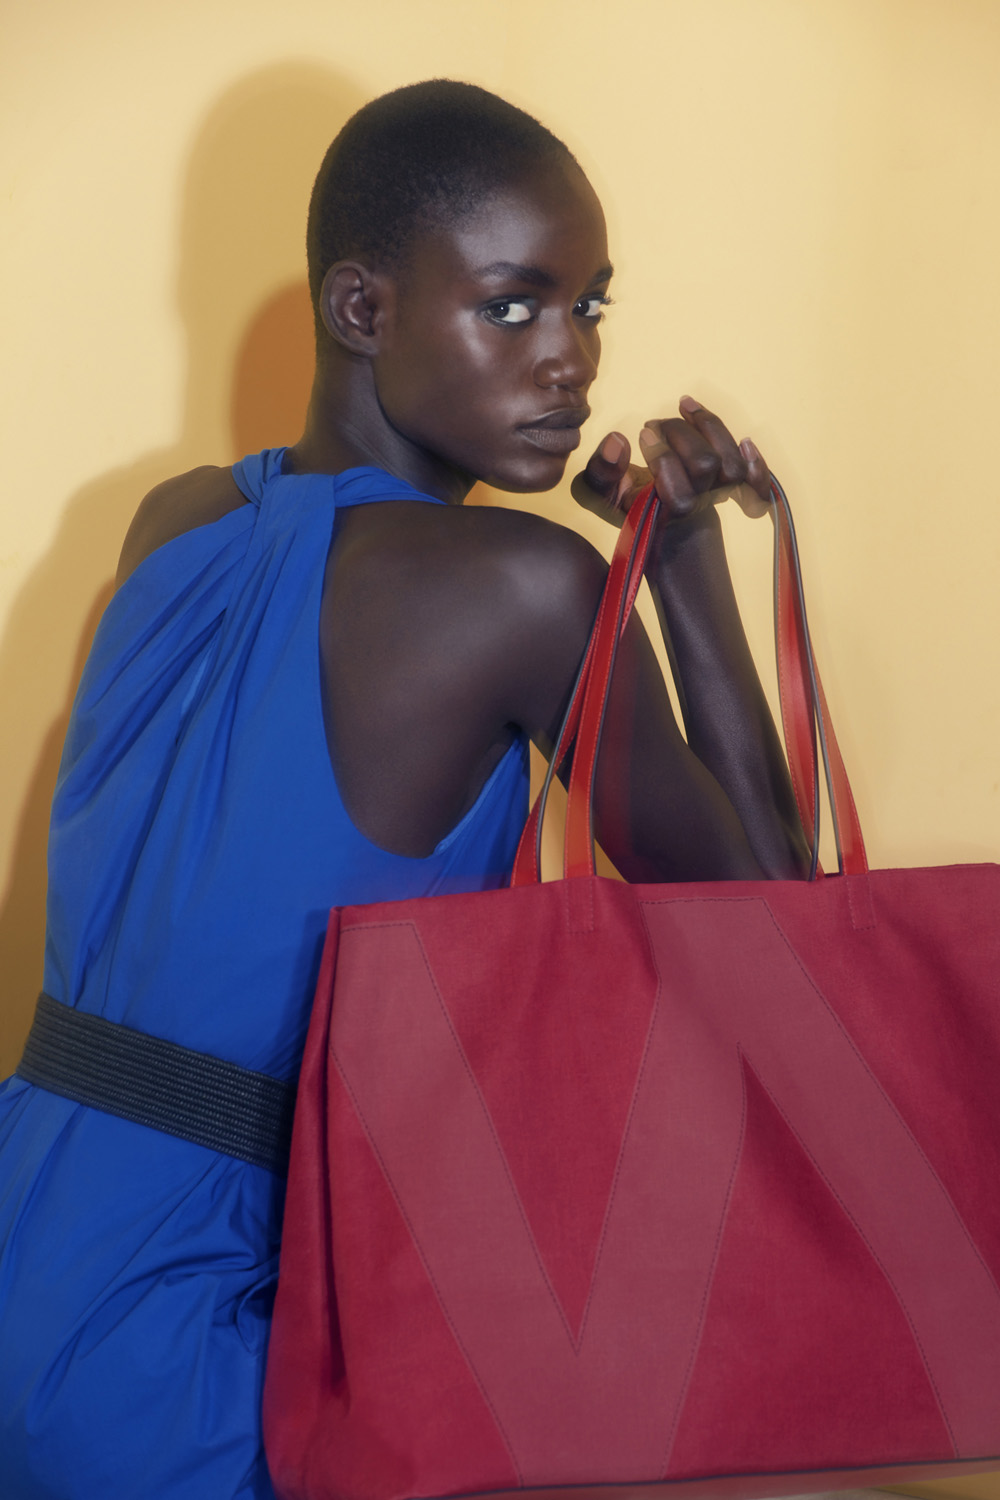 4. kép: Weekend Max Mara Collection - Summer Breeze